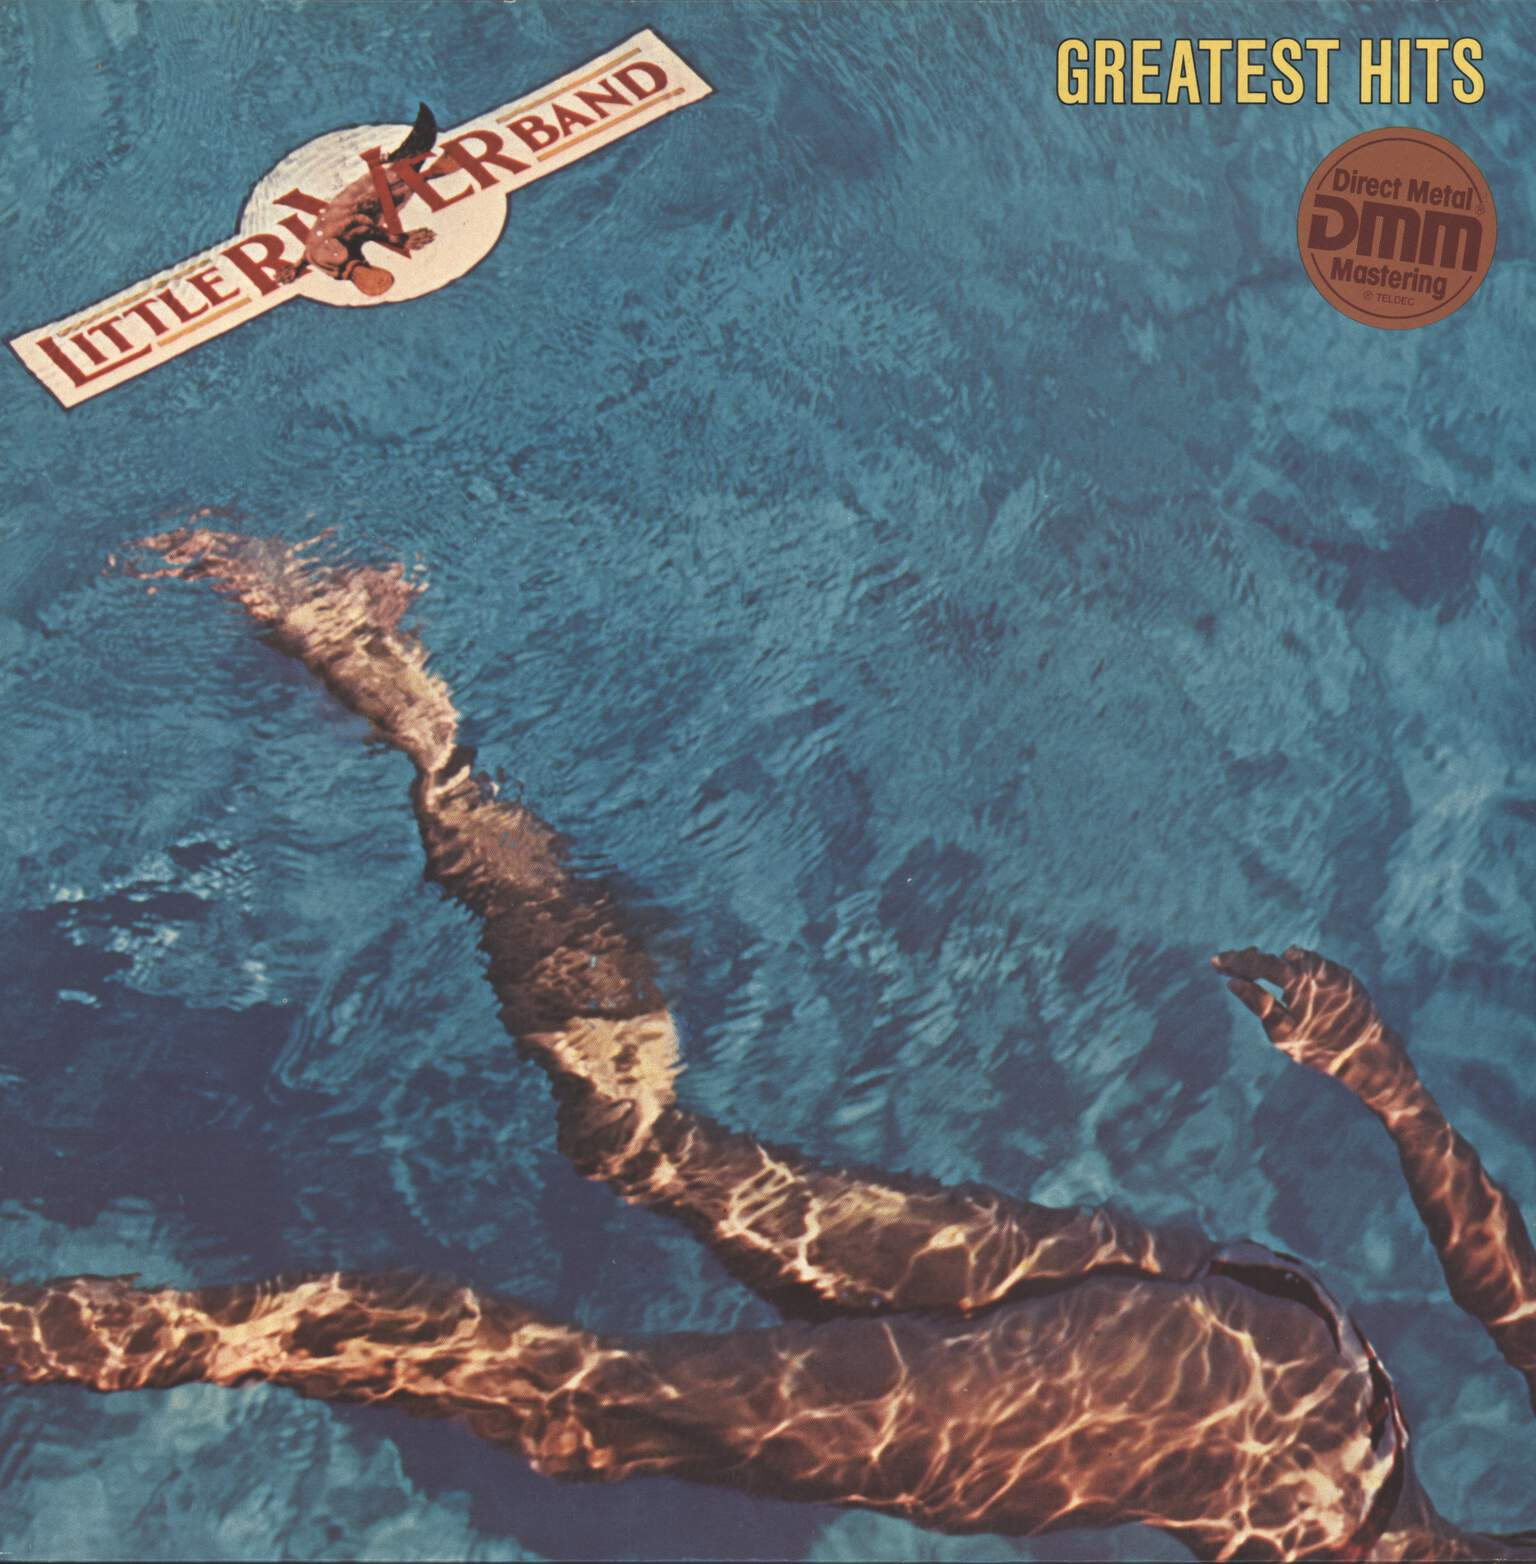 Little River Band: Greatest Hits, LP (Vinyl)